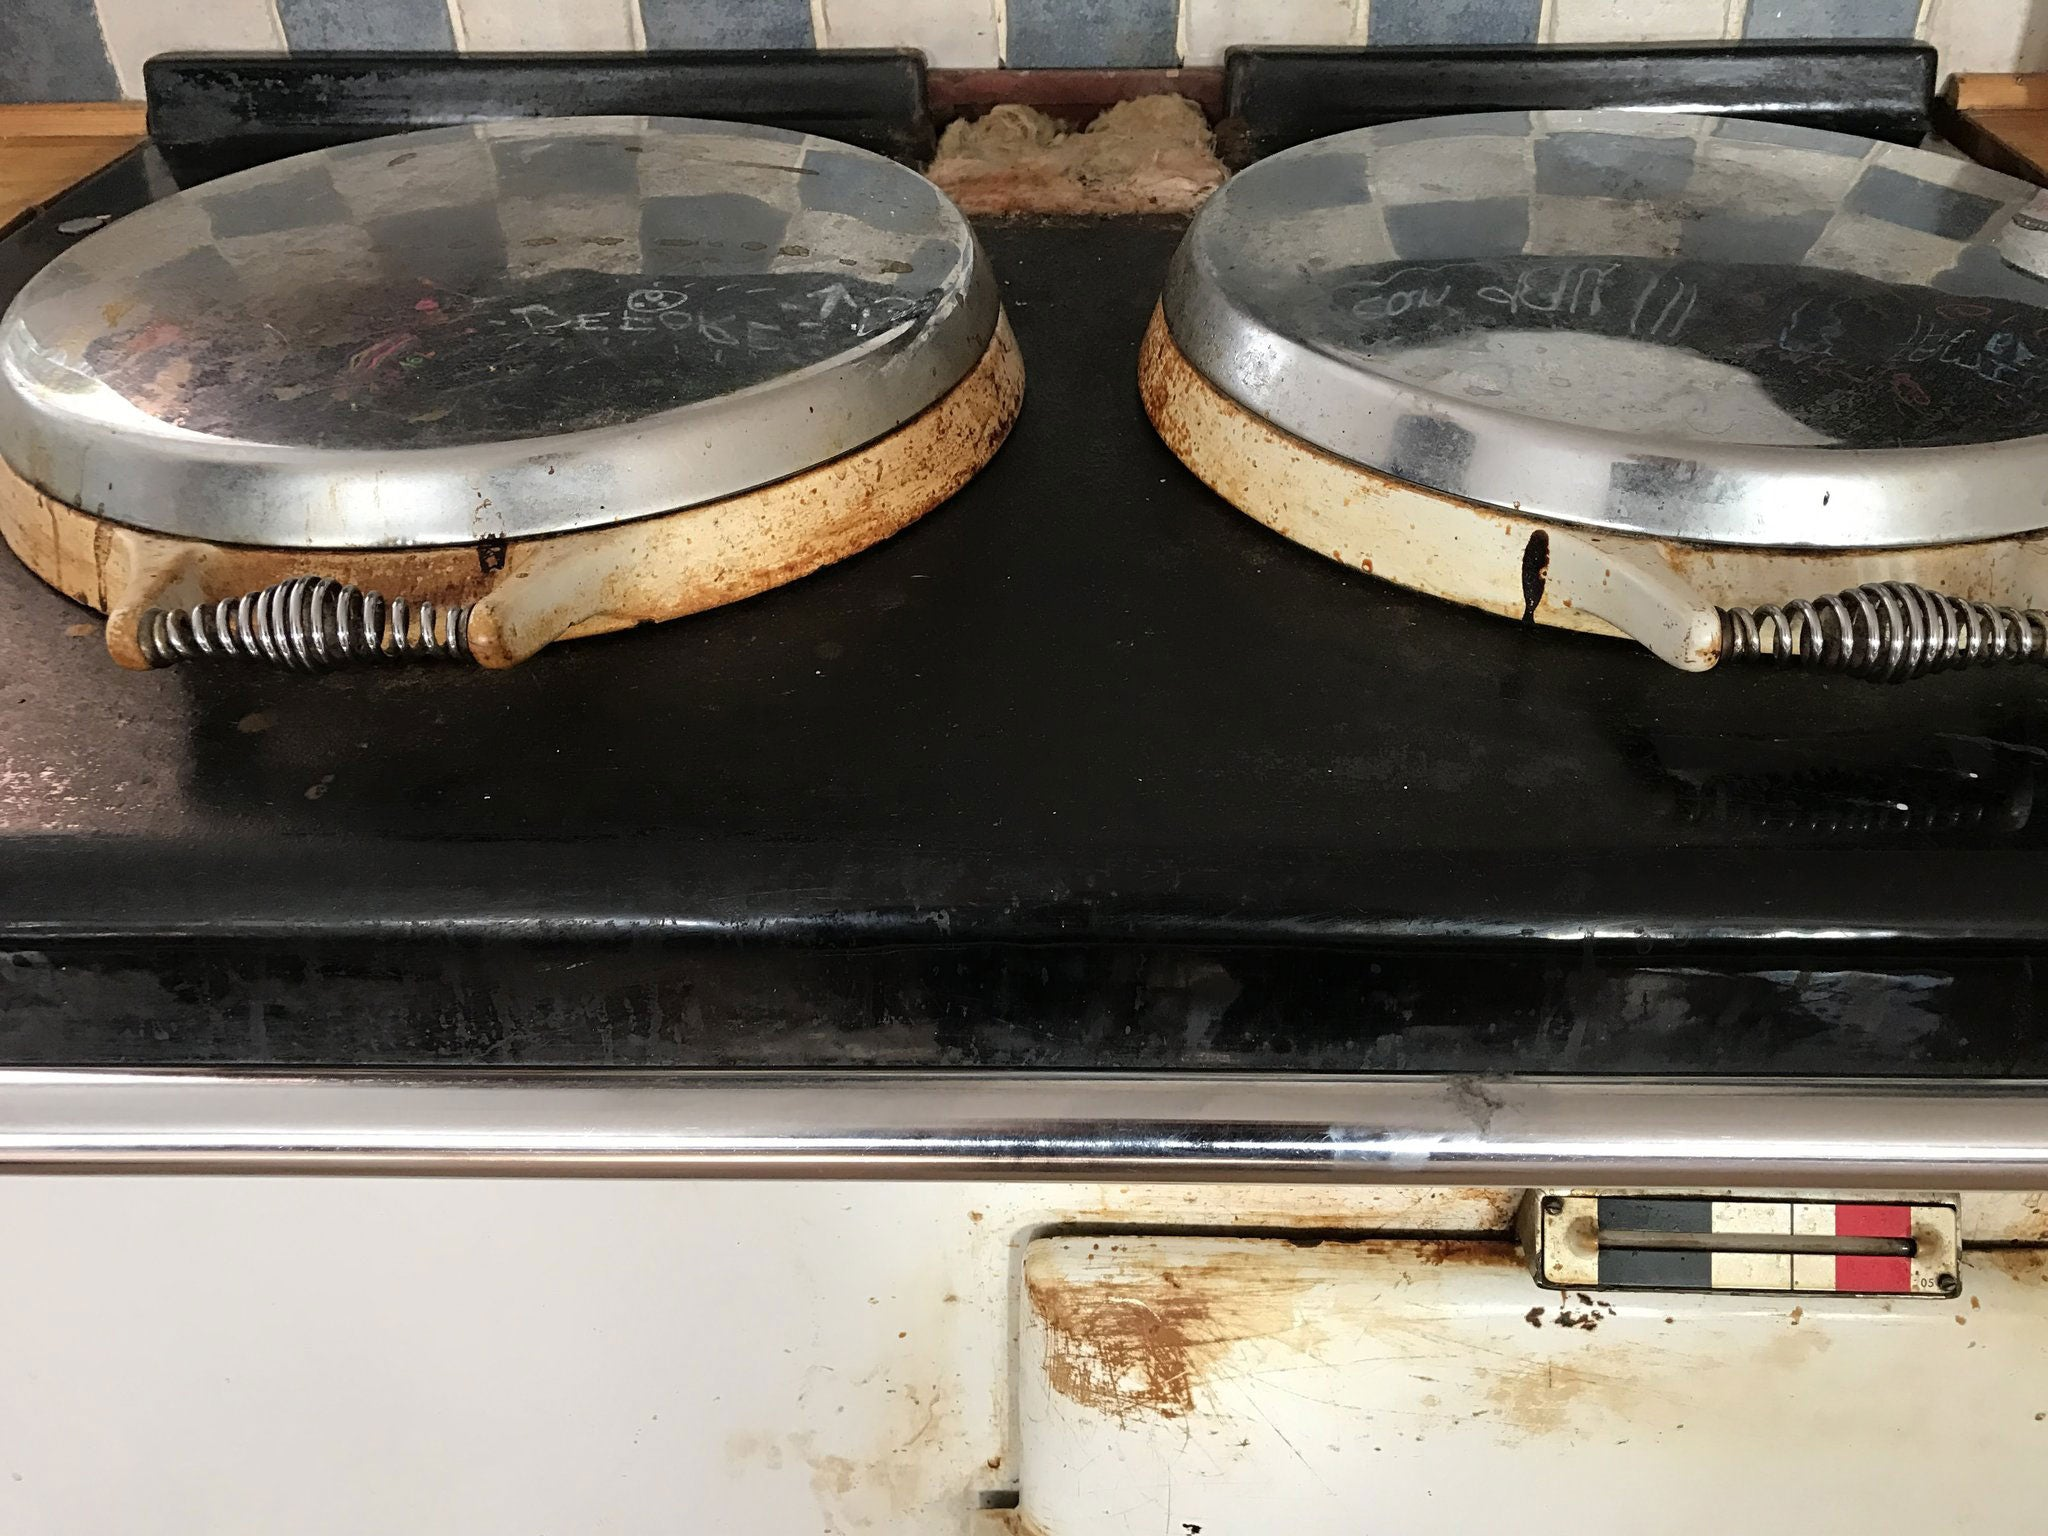 Top of white two oven cooker